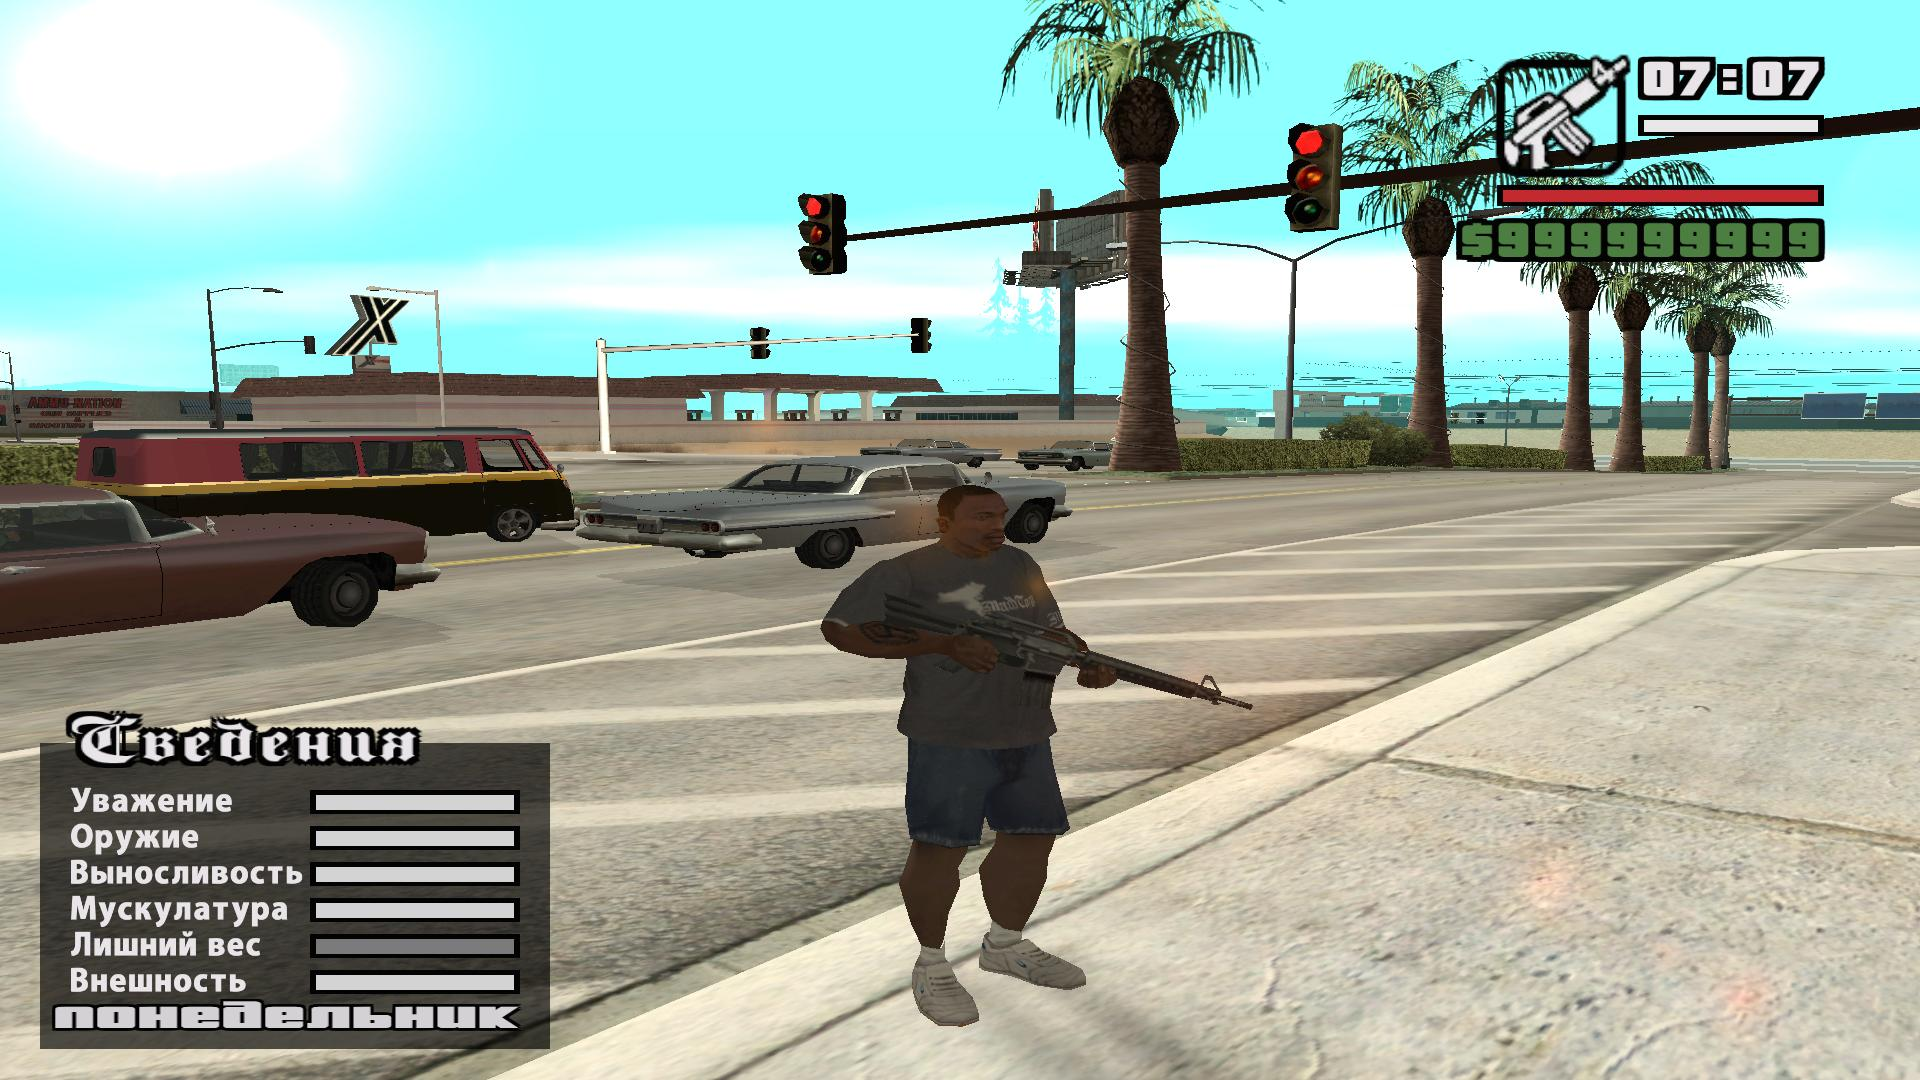 Super save for gta san andreas.